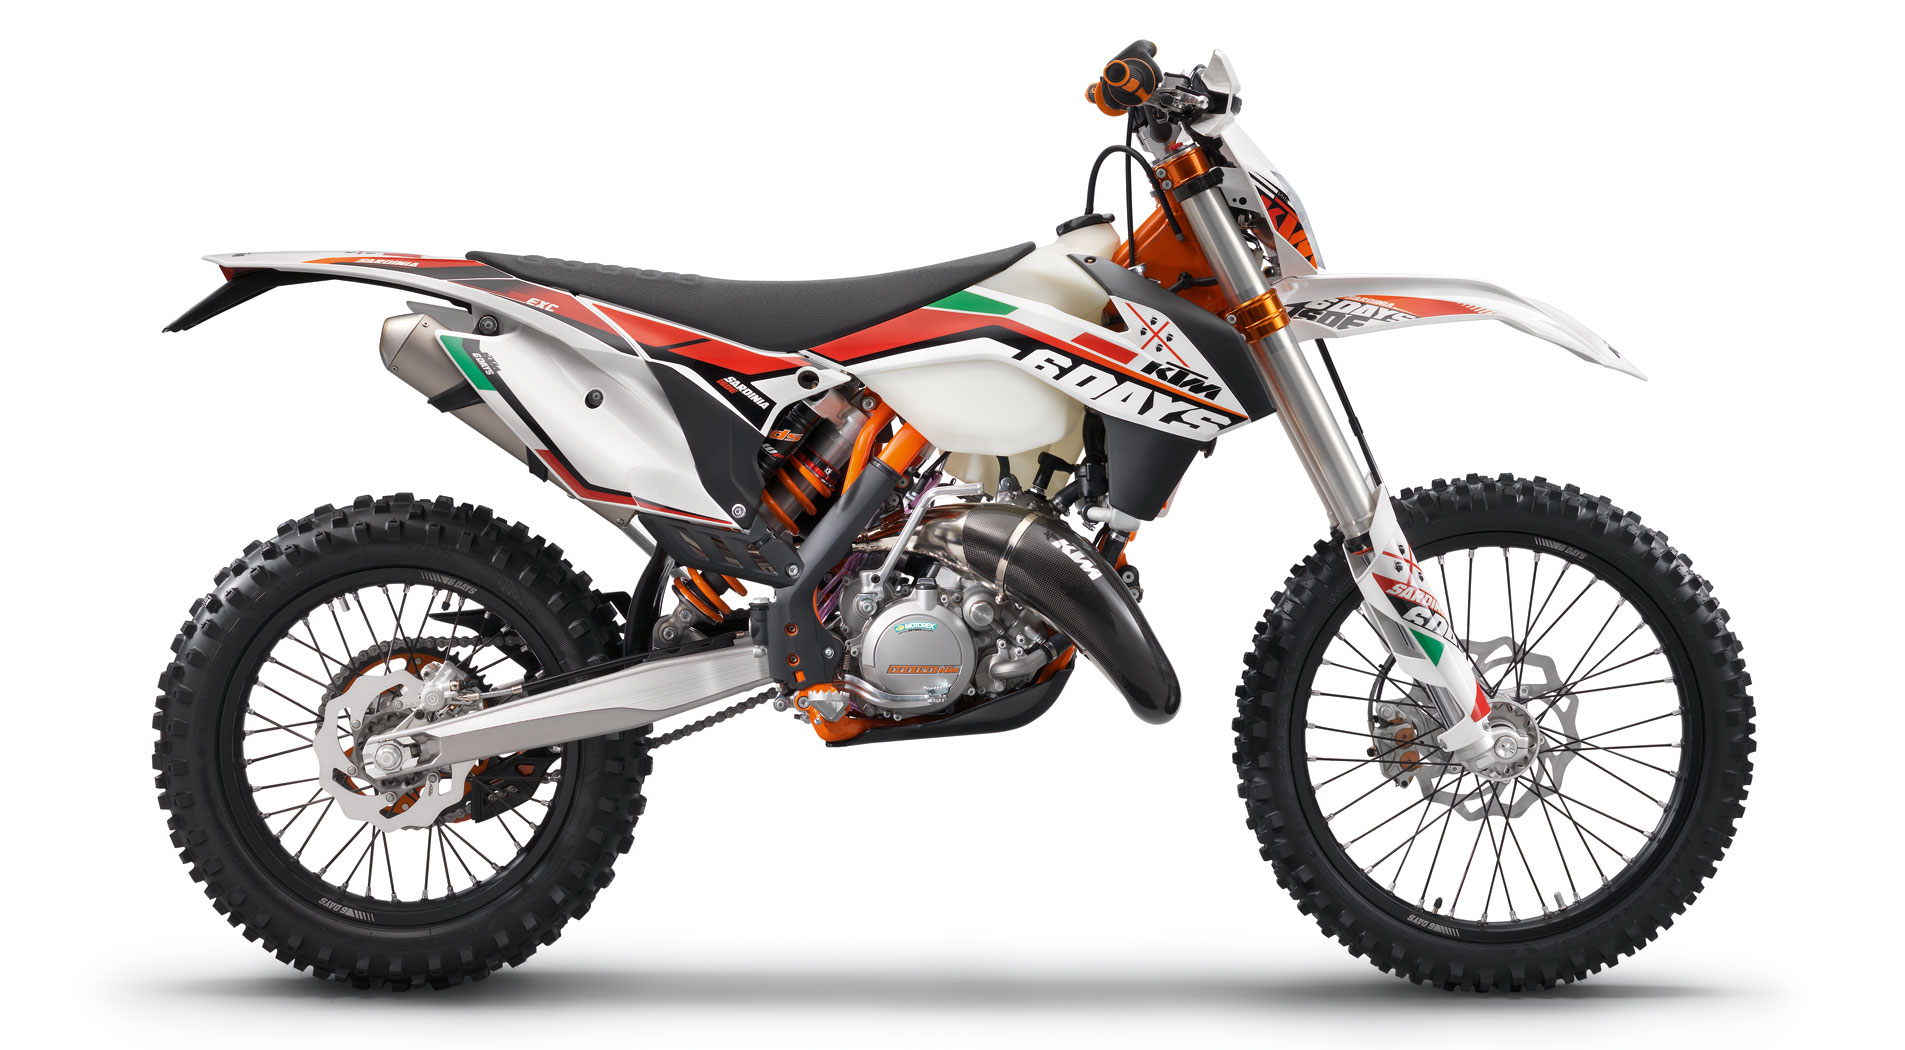 2014 ktm 125 exc six days moto zombdrive com. Black Bedroom Furniture Sets. Home Design Ideas